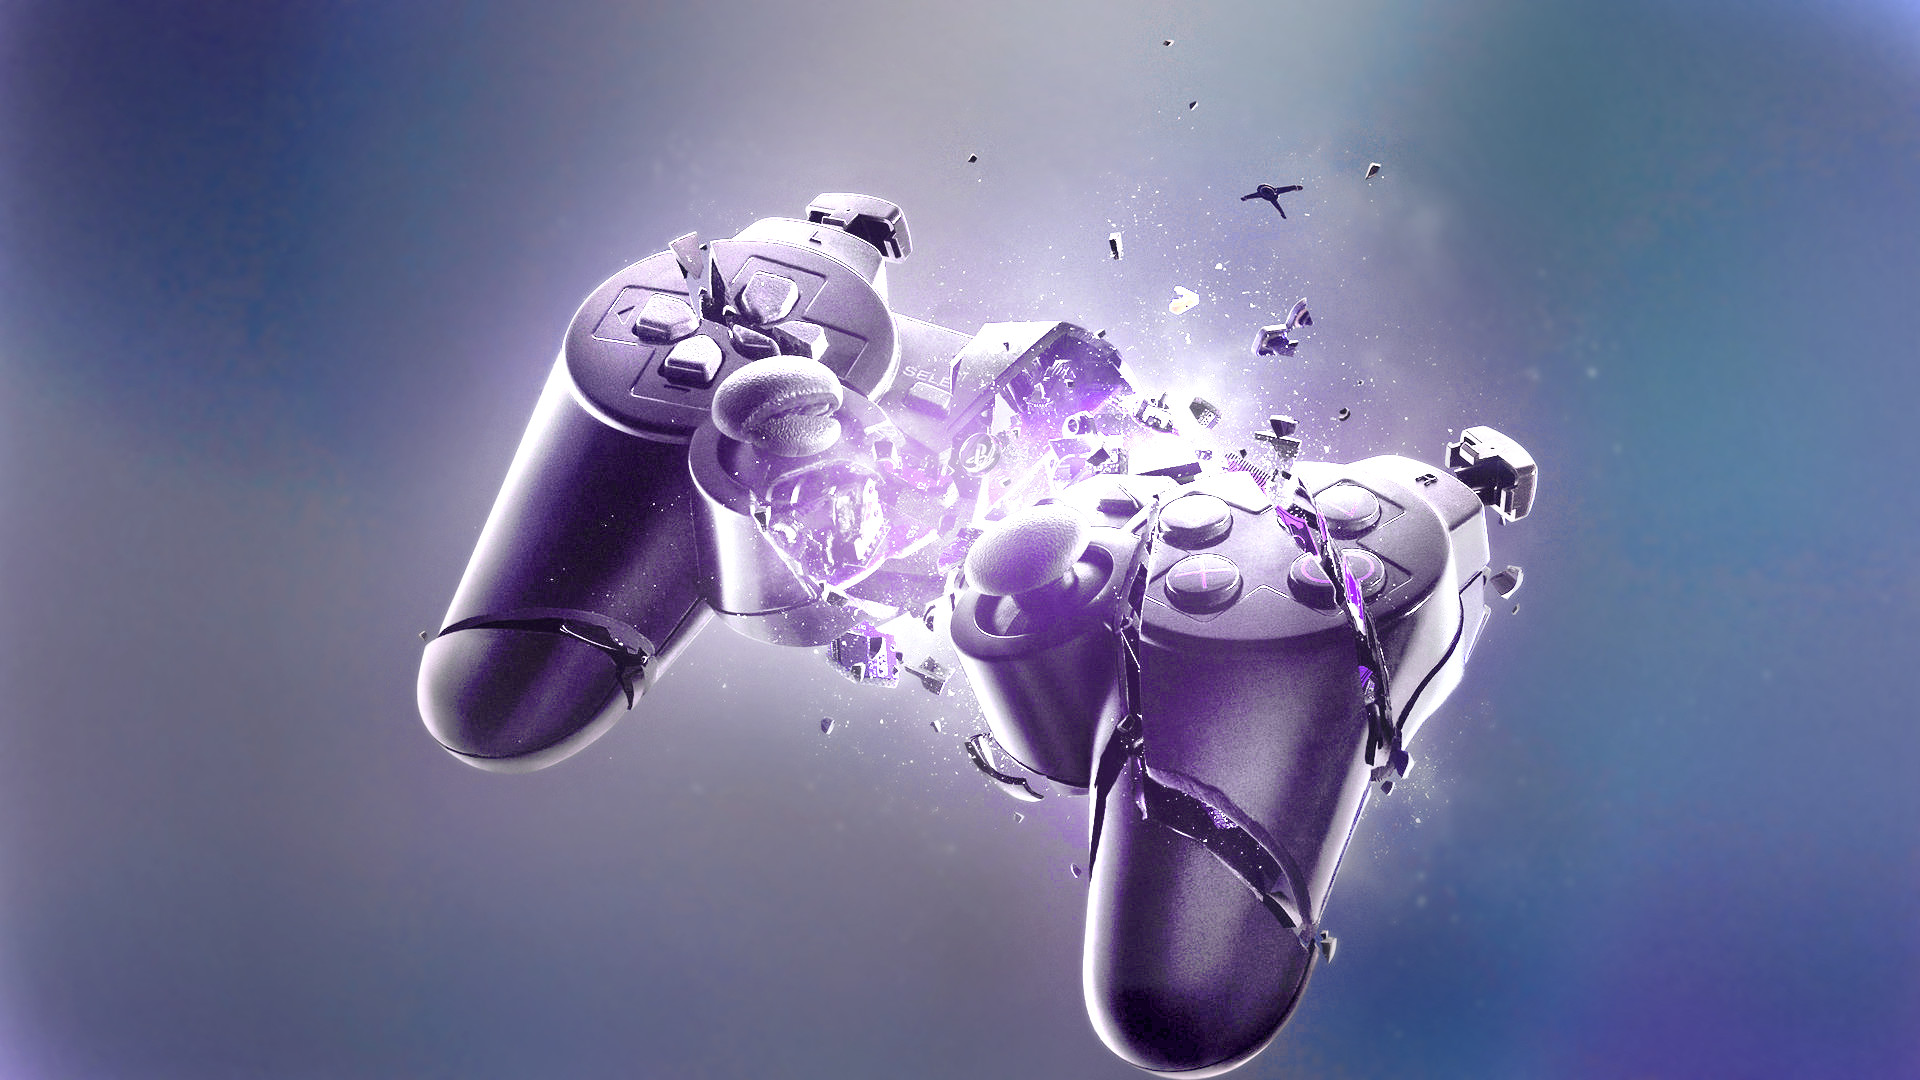 1920x1080 PlayStation 3 Controller